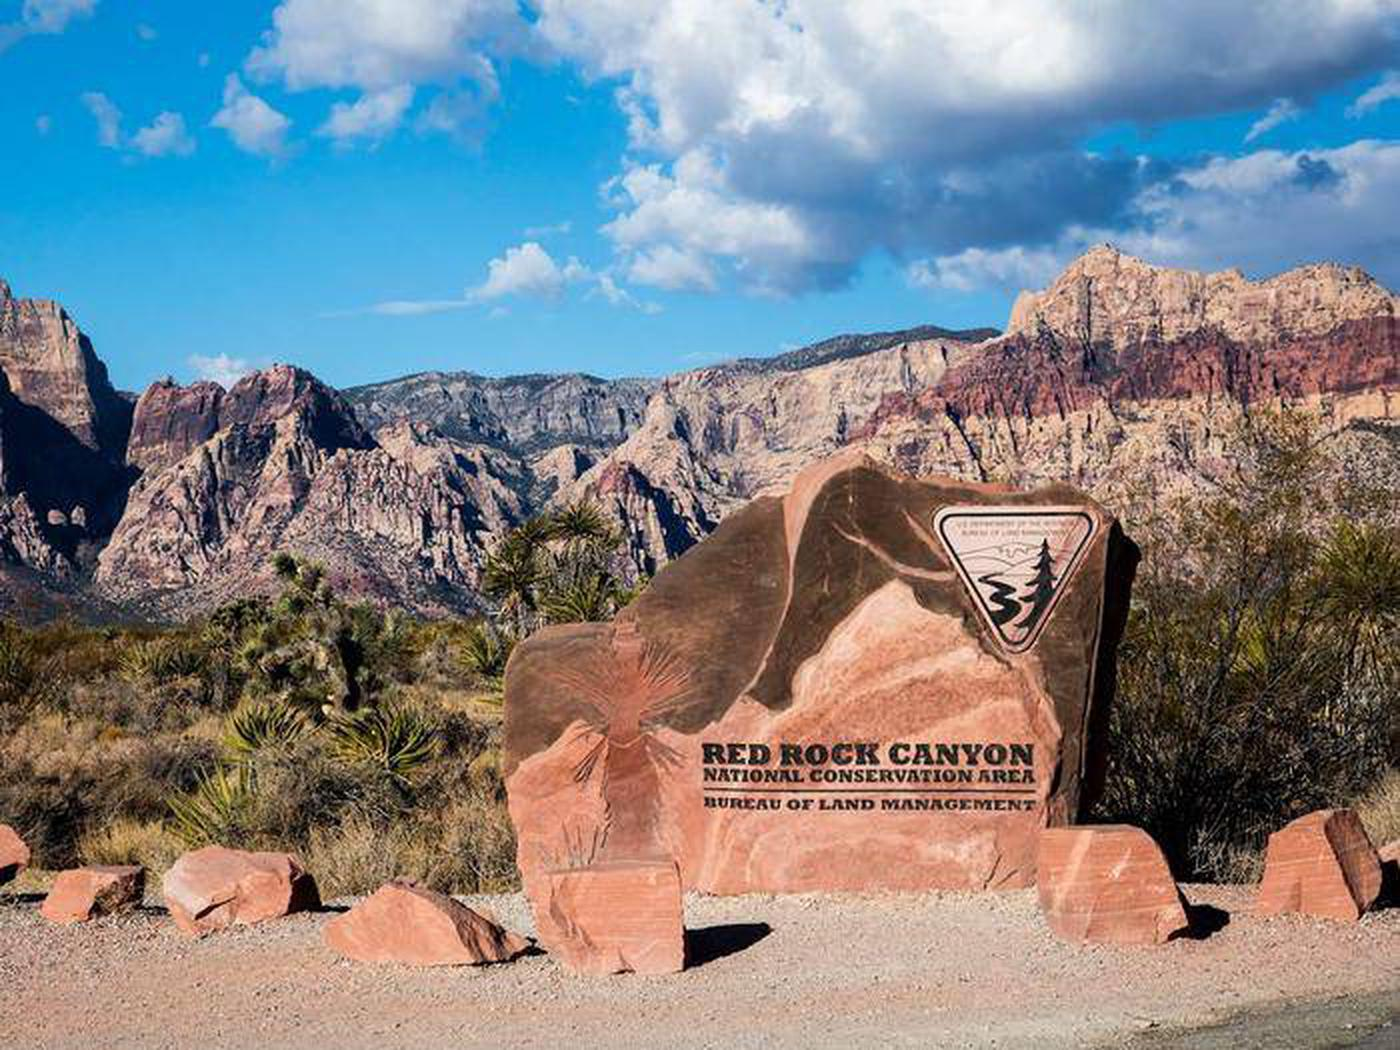 Red Rock Canyon entrance sign with mountains in the background. Red Rock Canyon welcomes visitors.